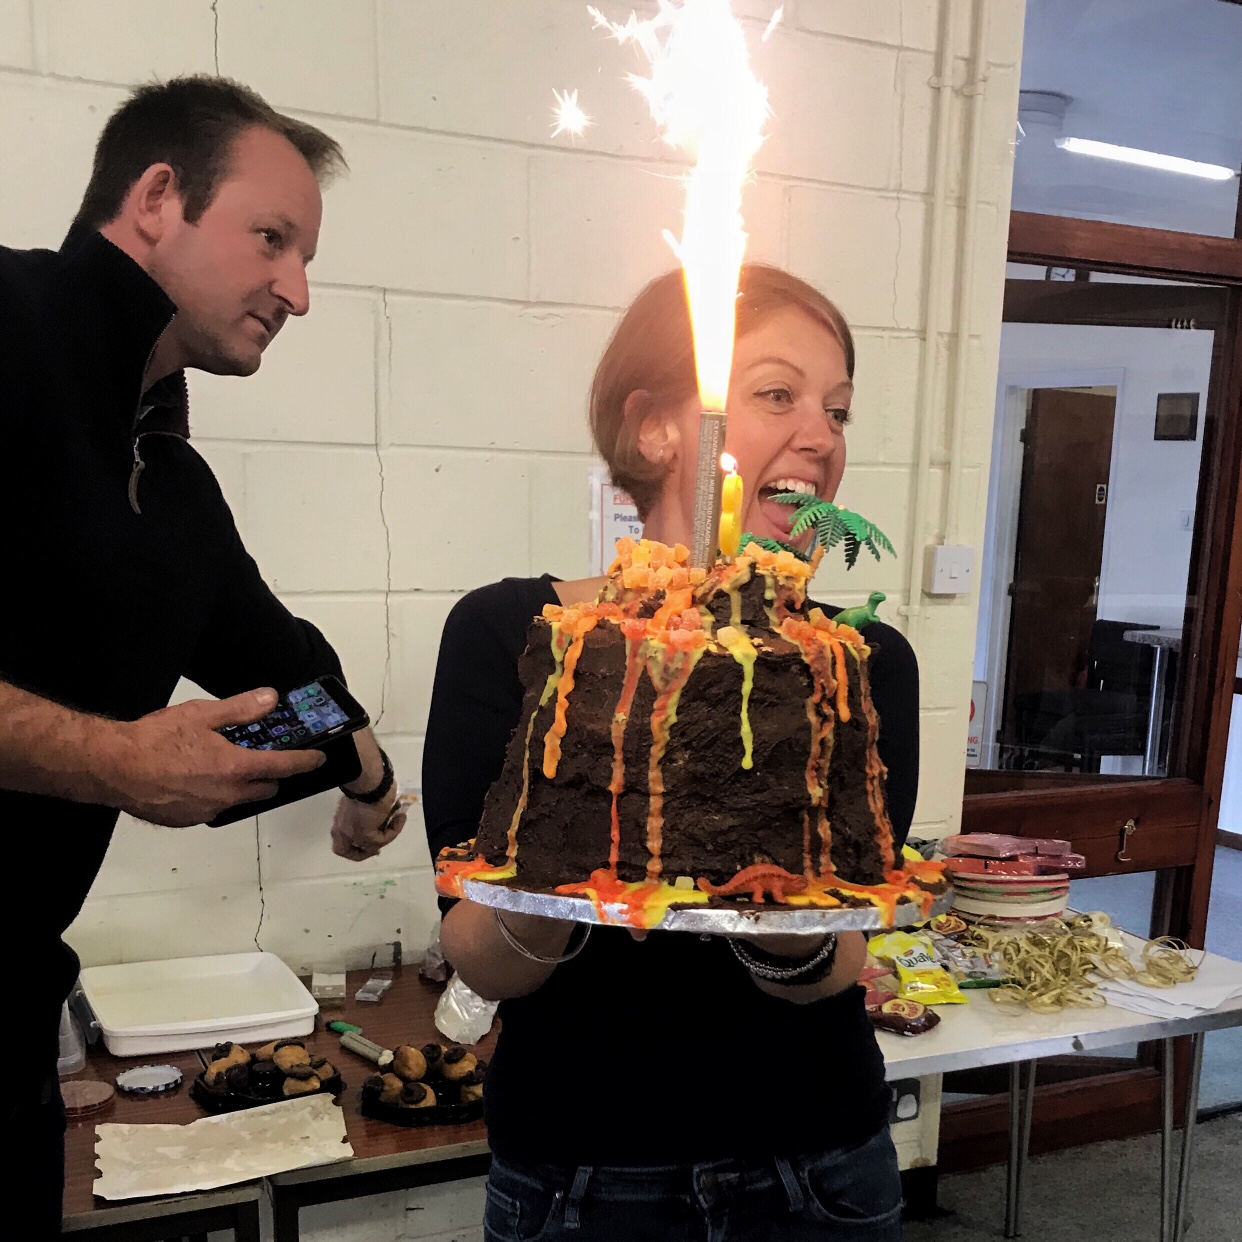 Me holding the giant volcano cake with a huge indoor firework sending sparks flying into the air. One of my science birthday party ideas.